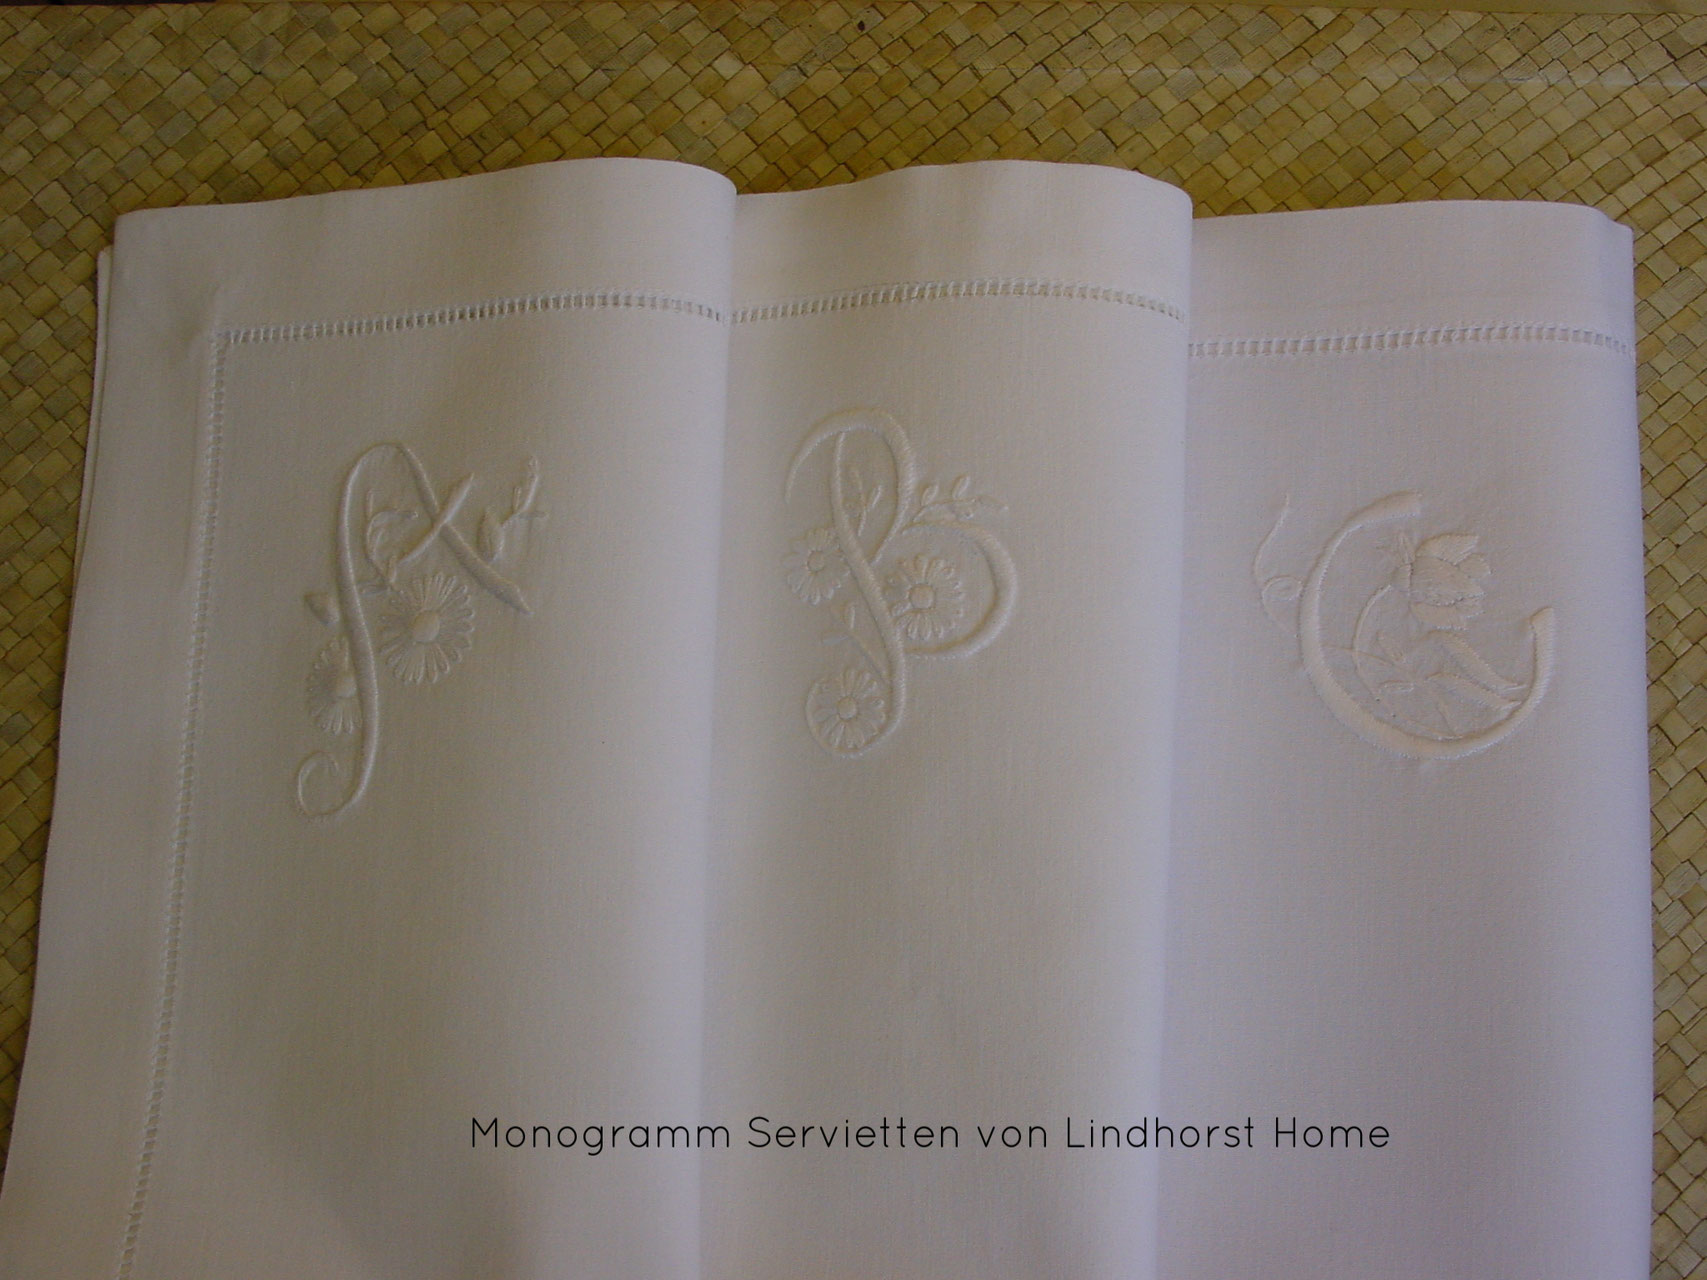 monogramm servietten lindhorst home. Black Bedroom Furniture Sets. Home Design Ideas